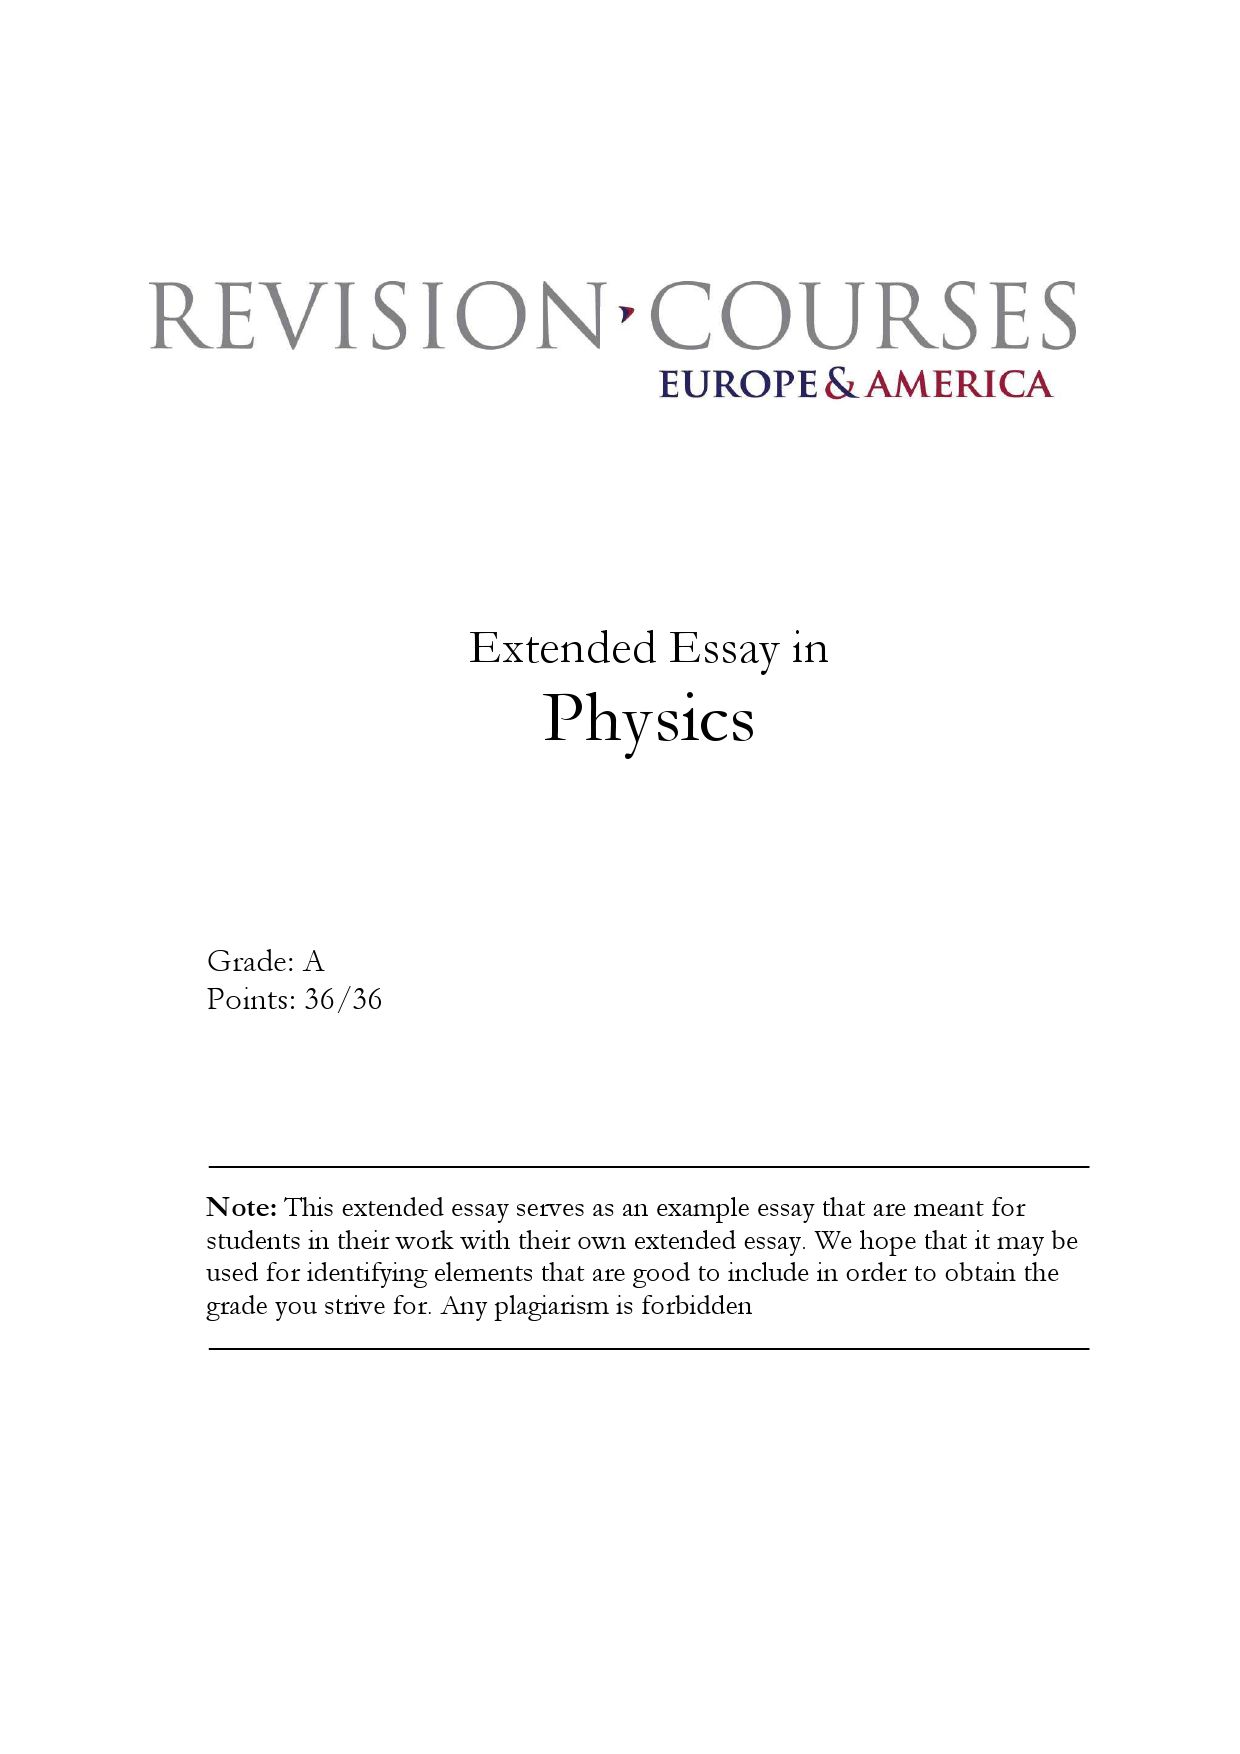 extended essay in physics by revision courses europe america issuu